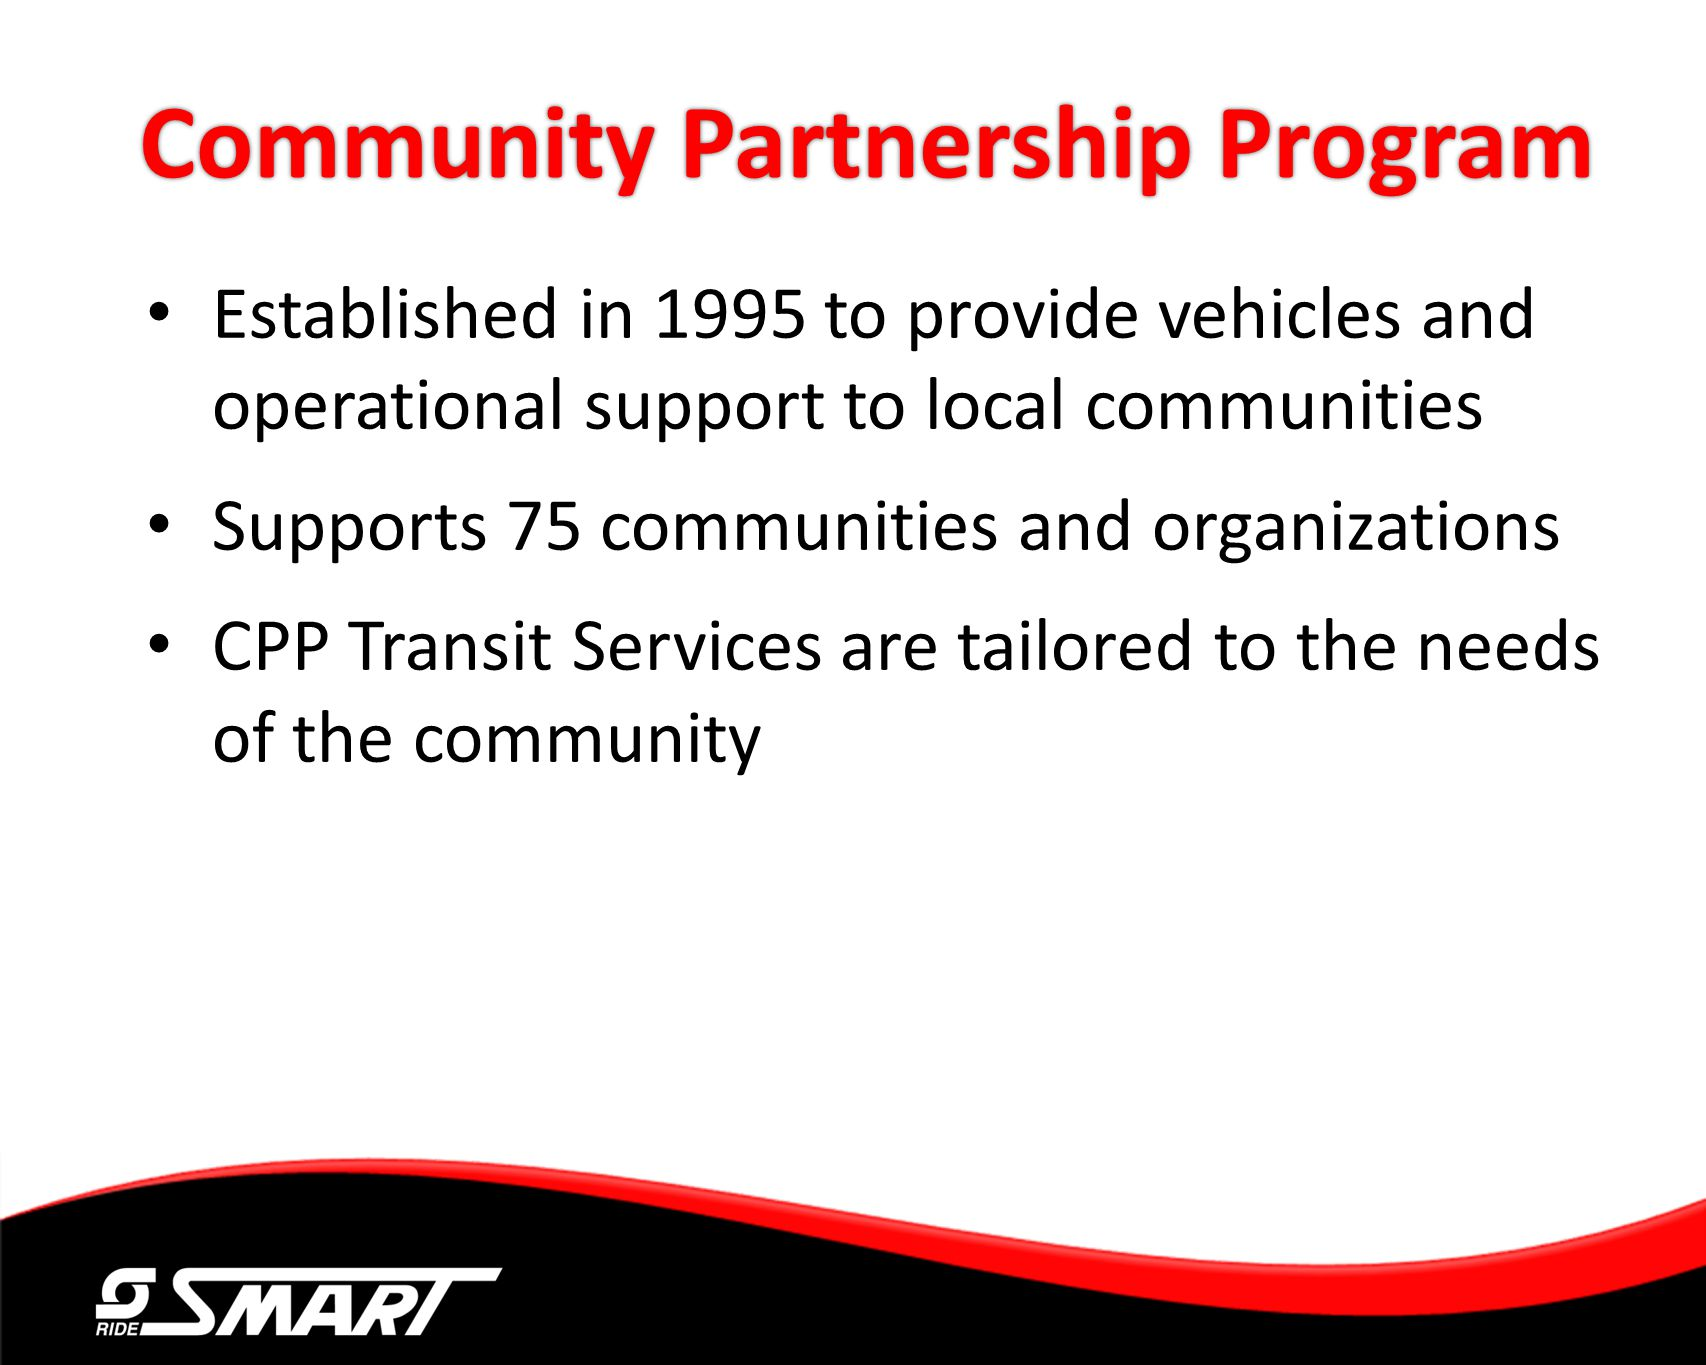 Community Partnership Program Established in 1995 to provide vehicles and operational support to local communities Supports 75 communities and organiz